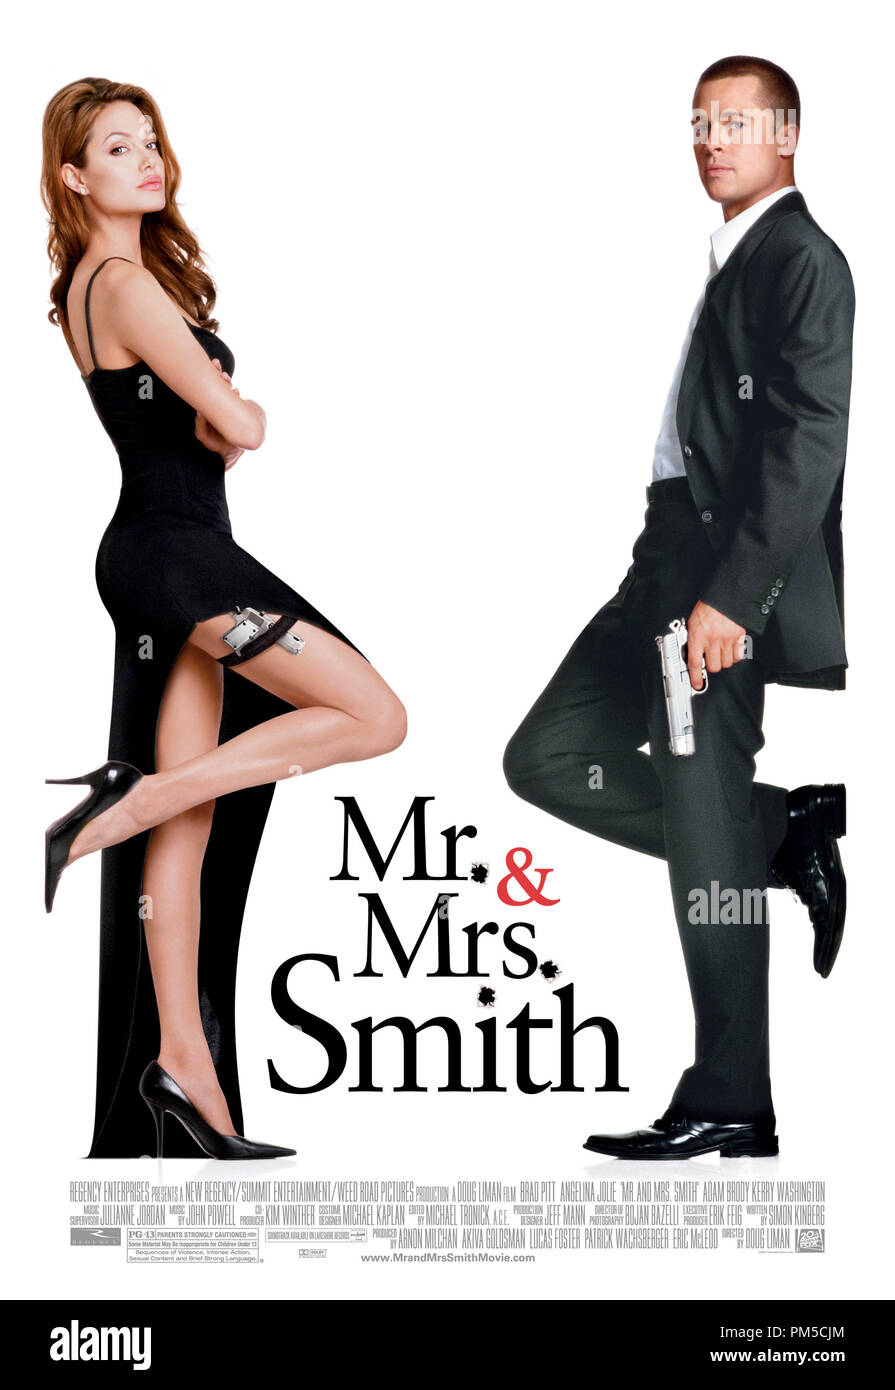 Poster Art from 'Mr. & Mrs. Smith' Poster Angelina Jolie, Brad Pitt © 2005 20th Century Fox  File Reference # 307361102THA  For Editorial Use Only -  All Rights Reserved - Stock Image